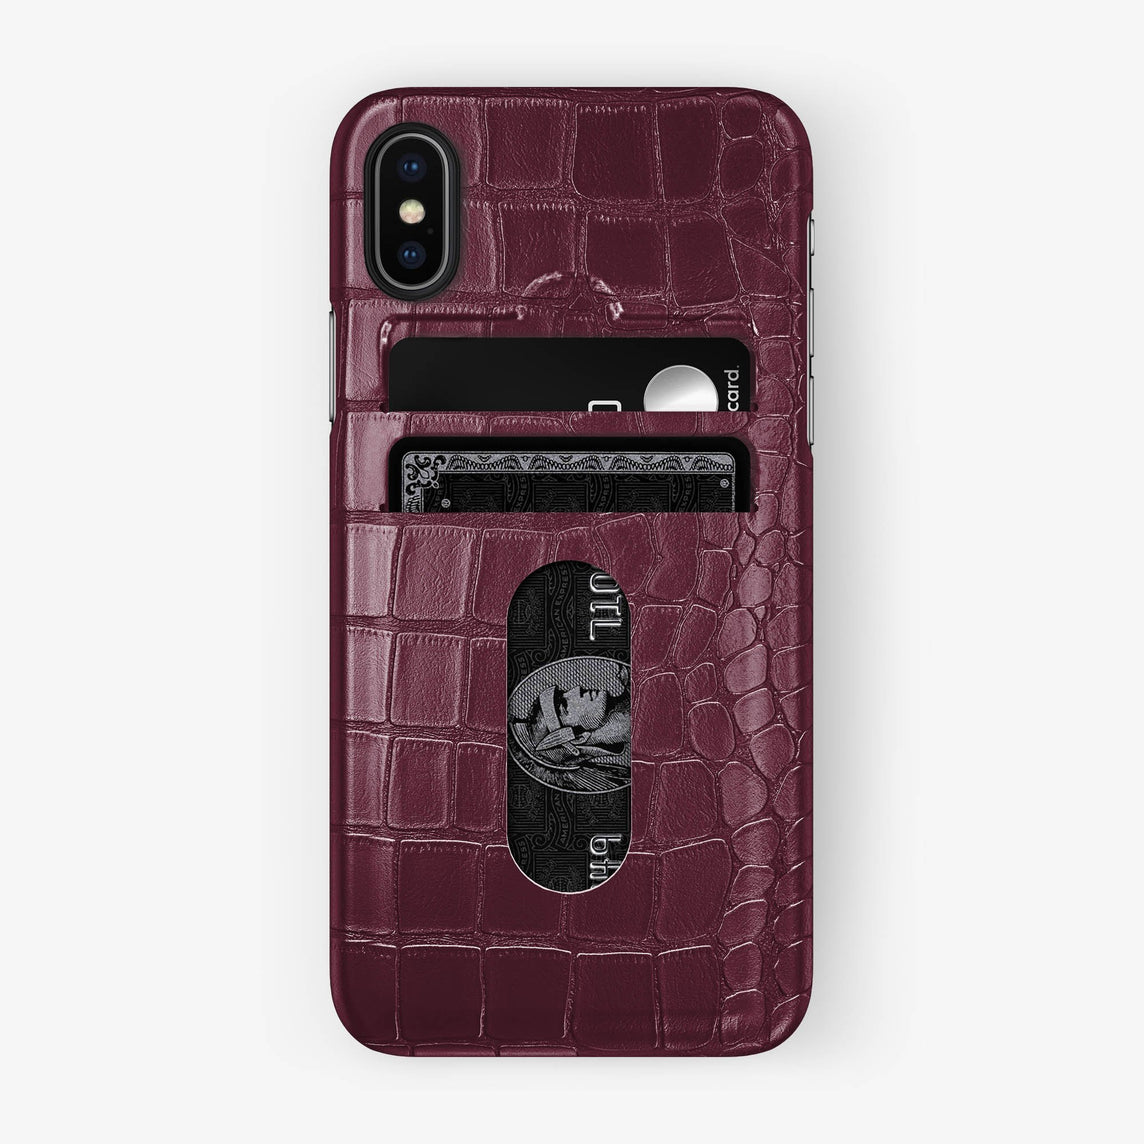 Alligator Card Holder Case iPhone X/Xs | Burgundy - Black - Hadoro